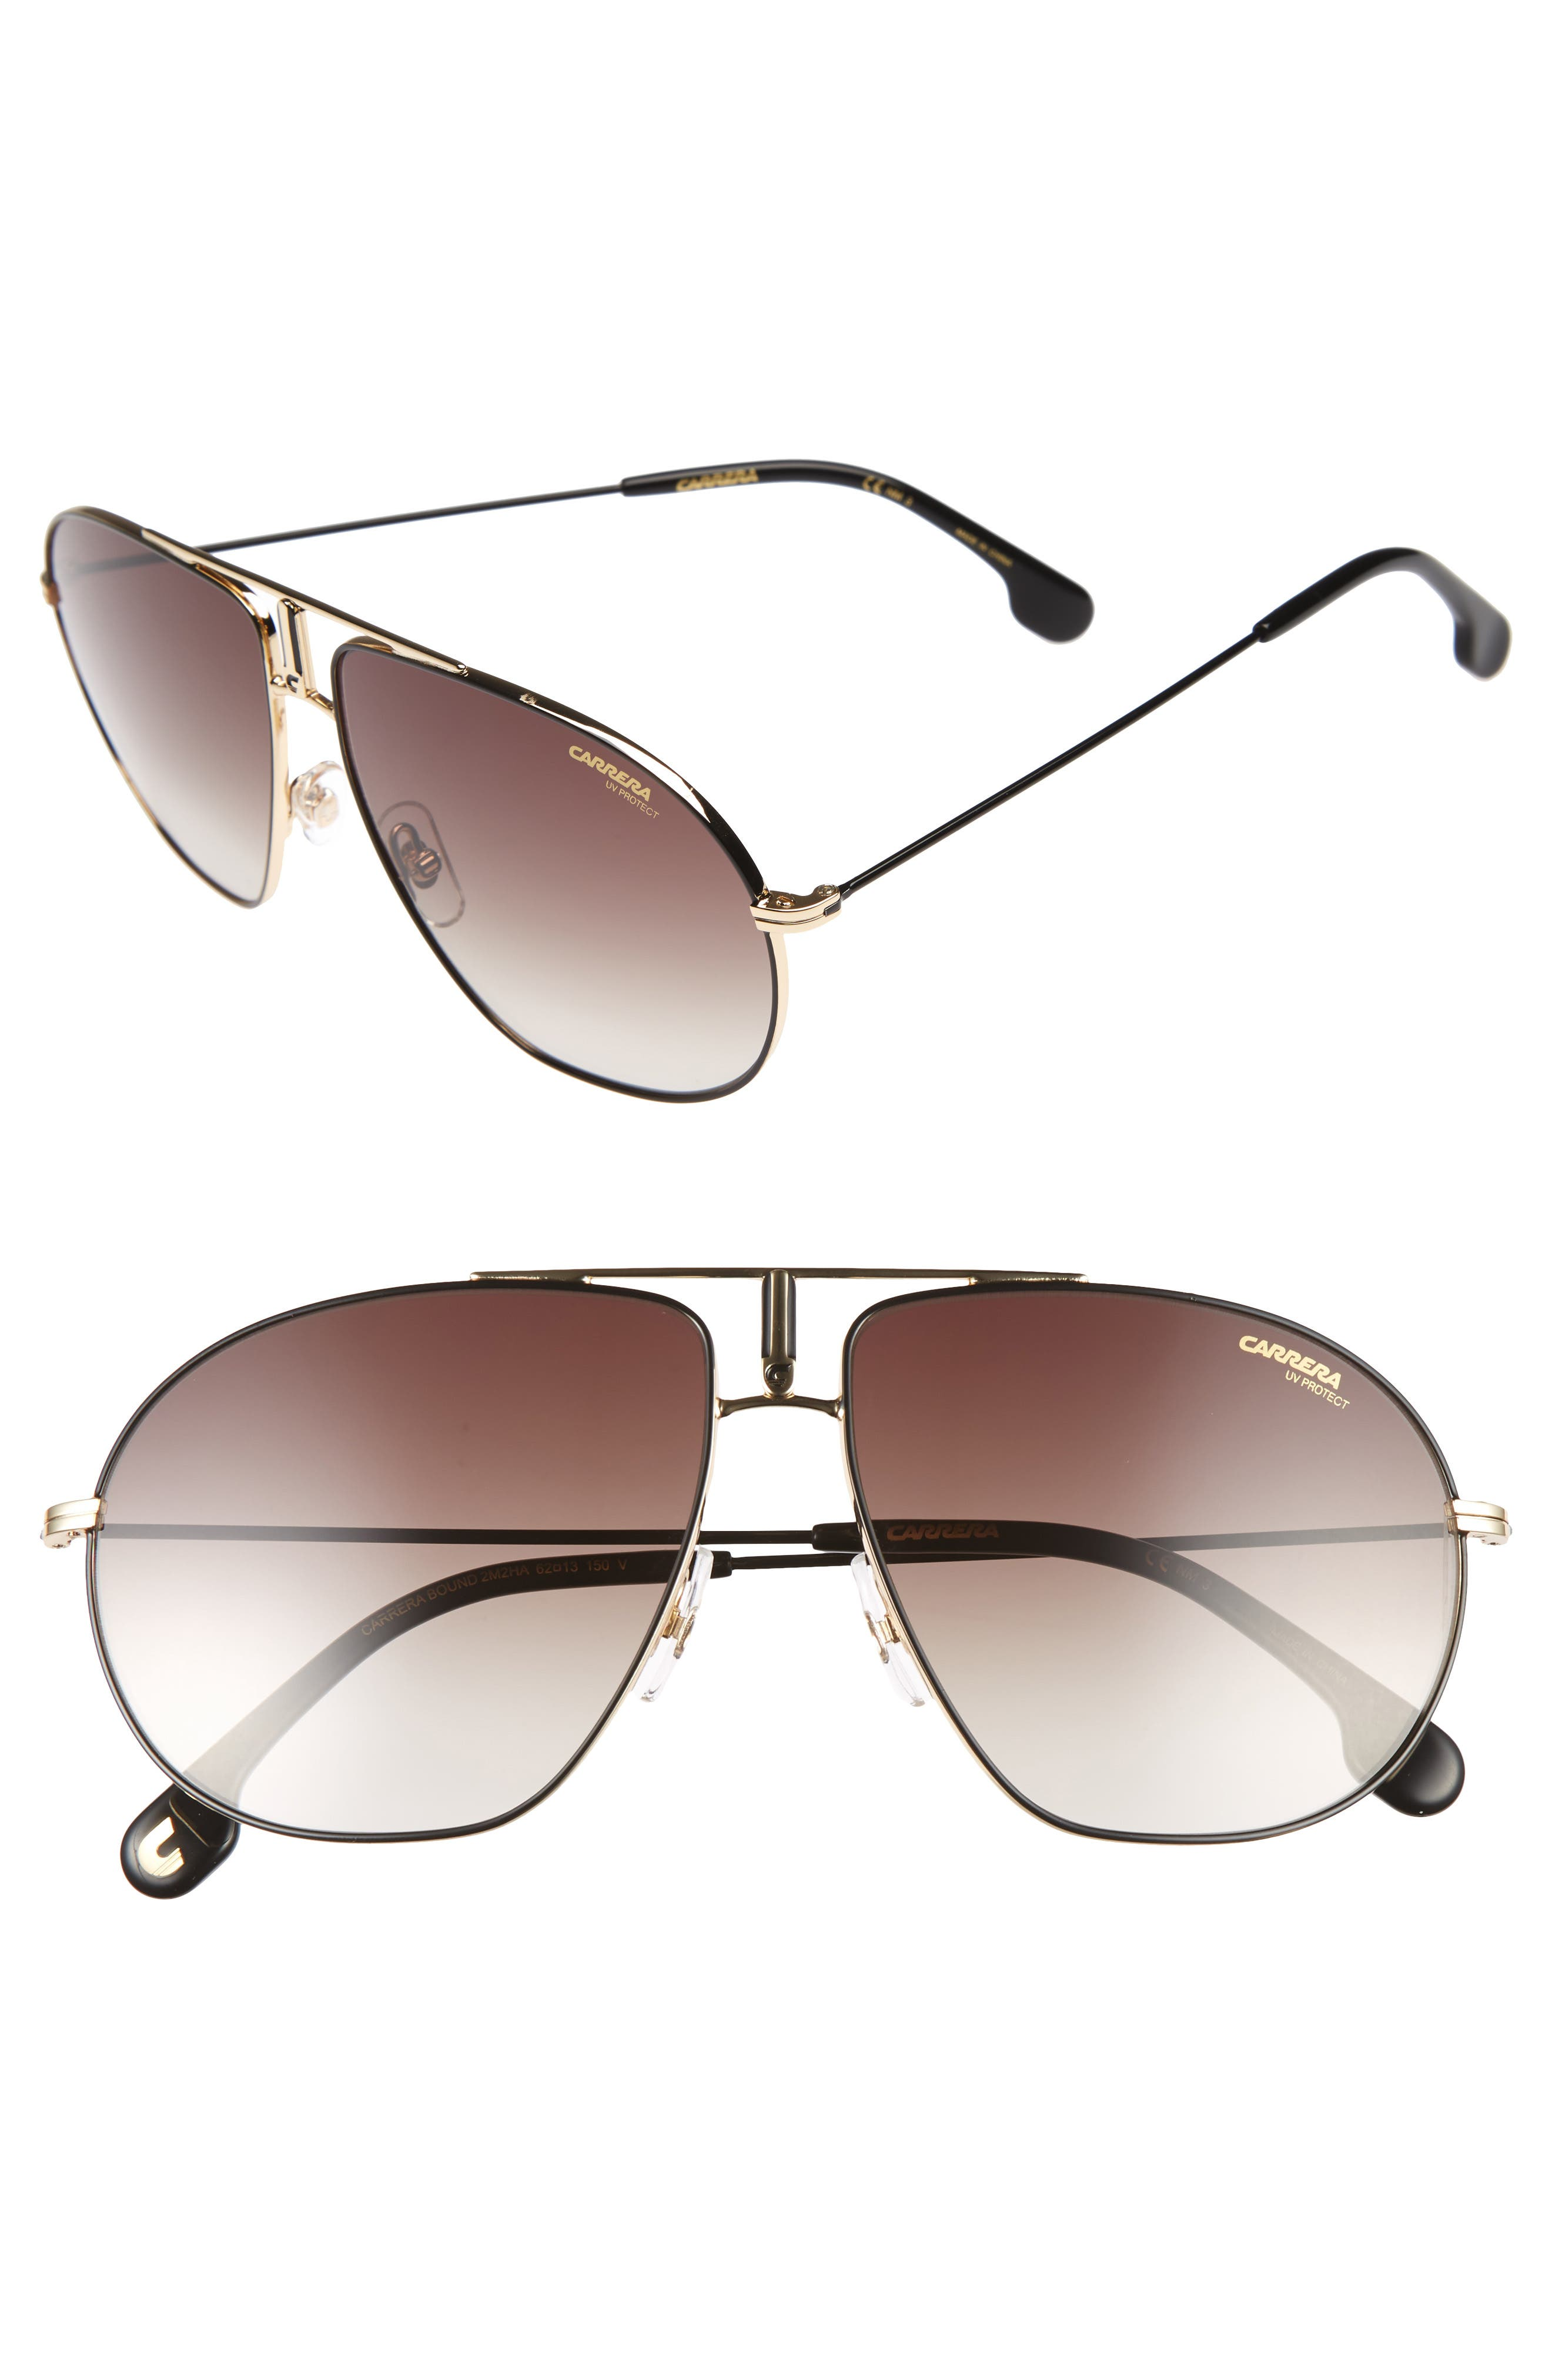 Carrera Eyewear Bounds 62mm Gradient Aviator Sunglasses